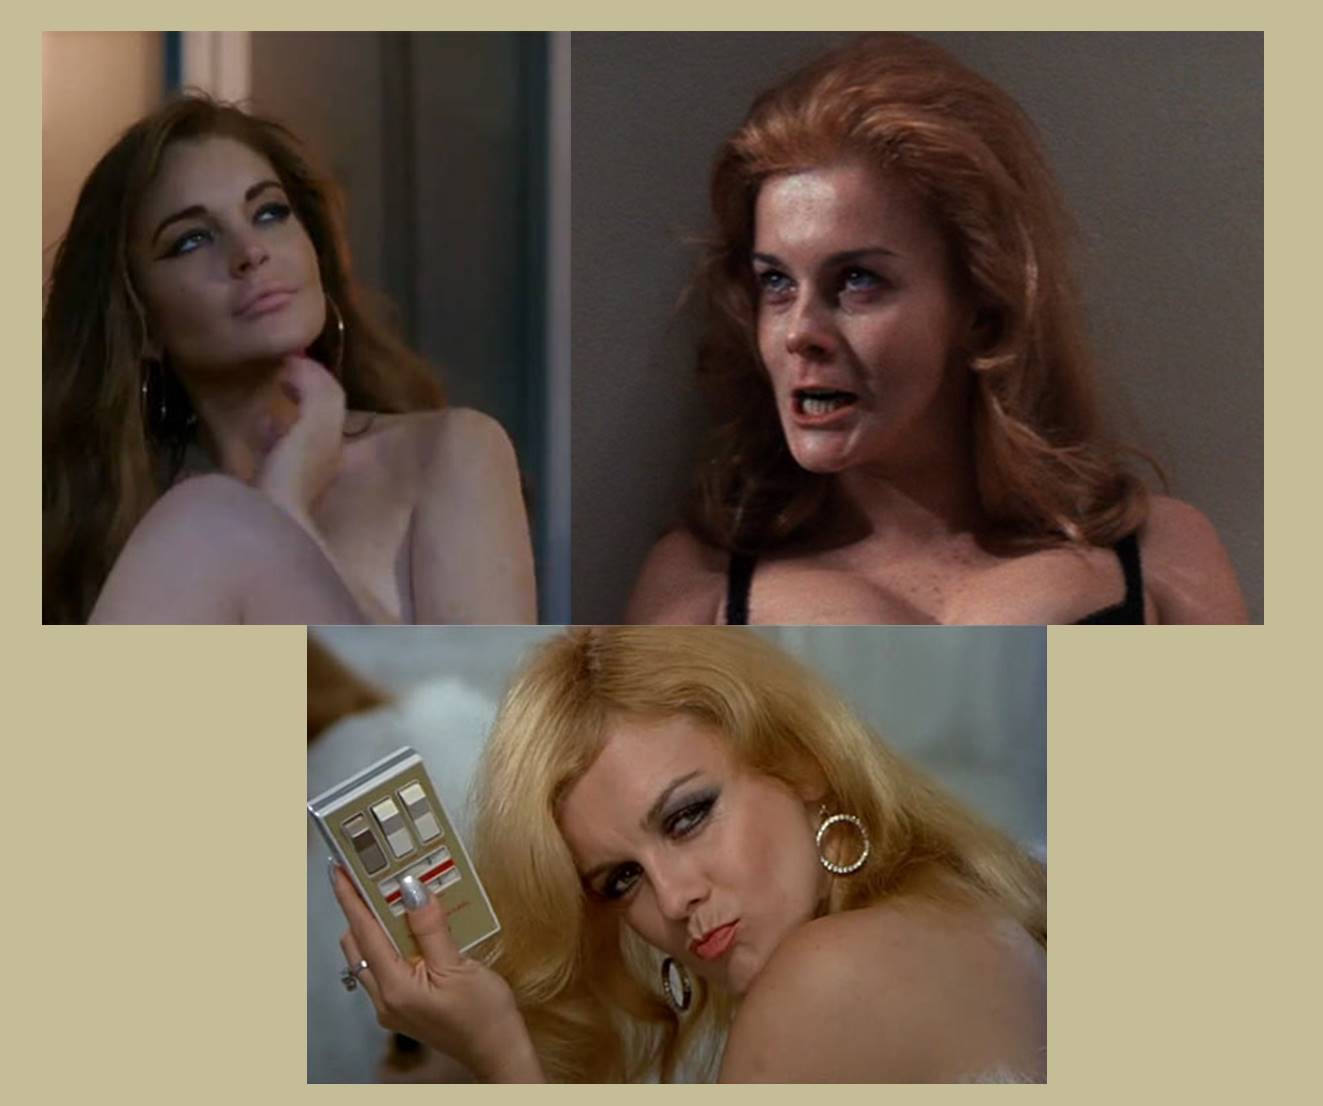 For that Ann margret carnal knowledge can